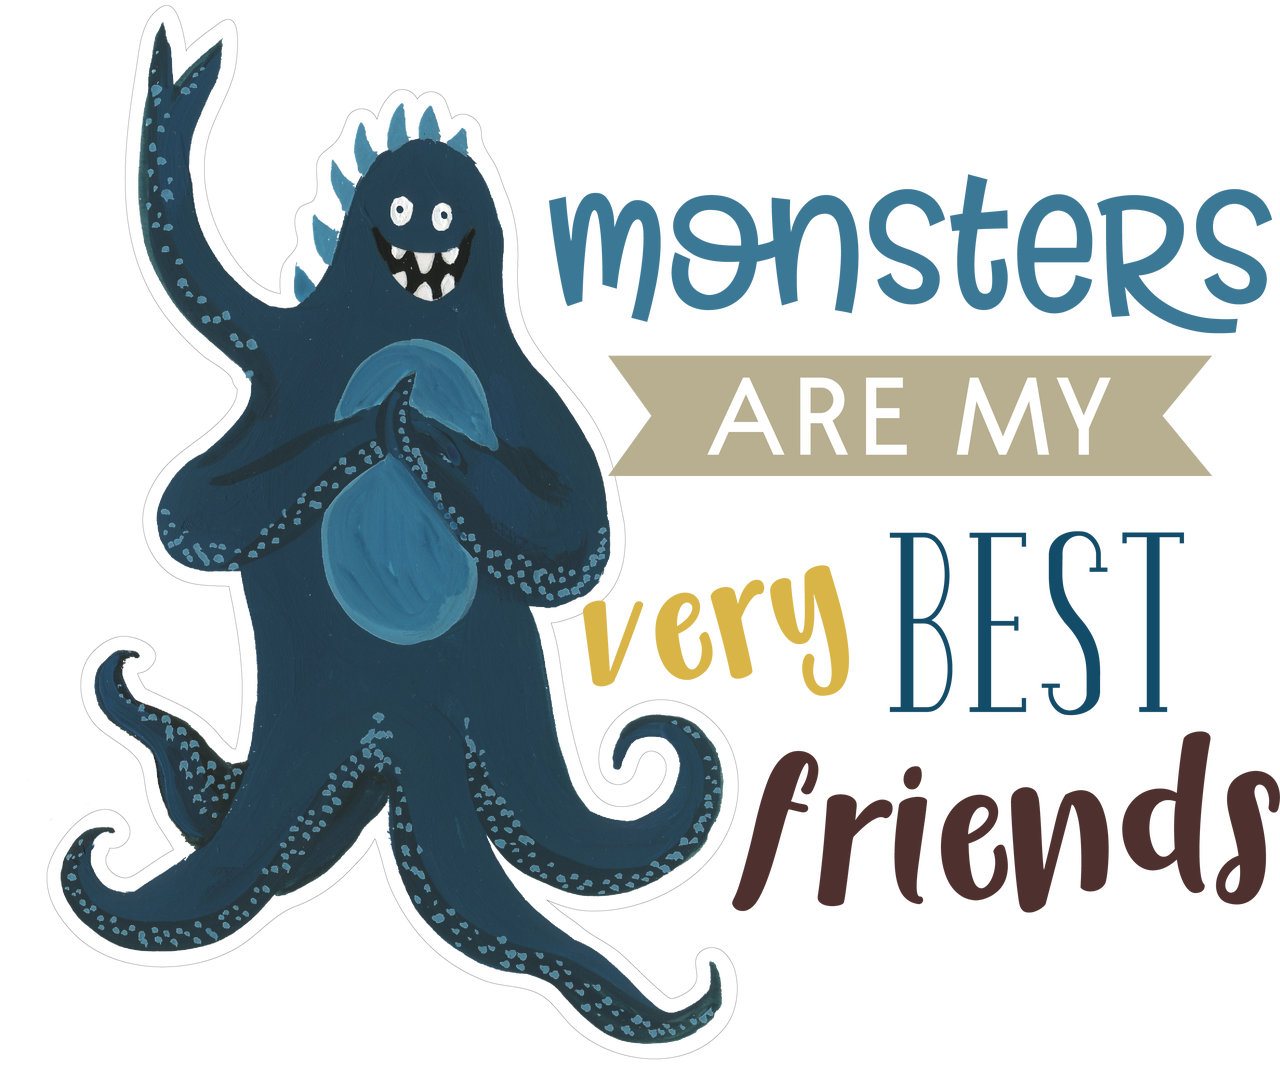 Monsters Are My Very Best Friends Print & Cut File